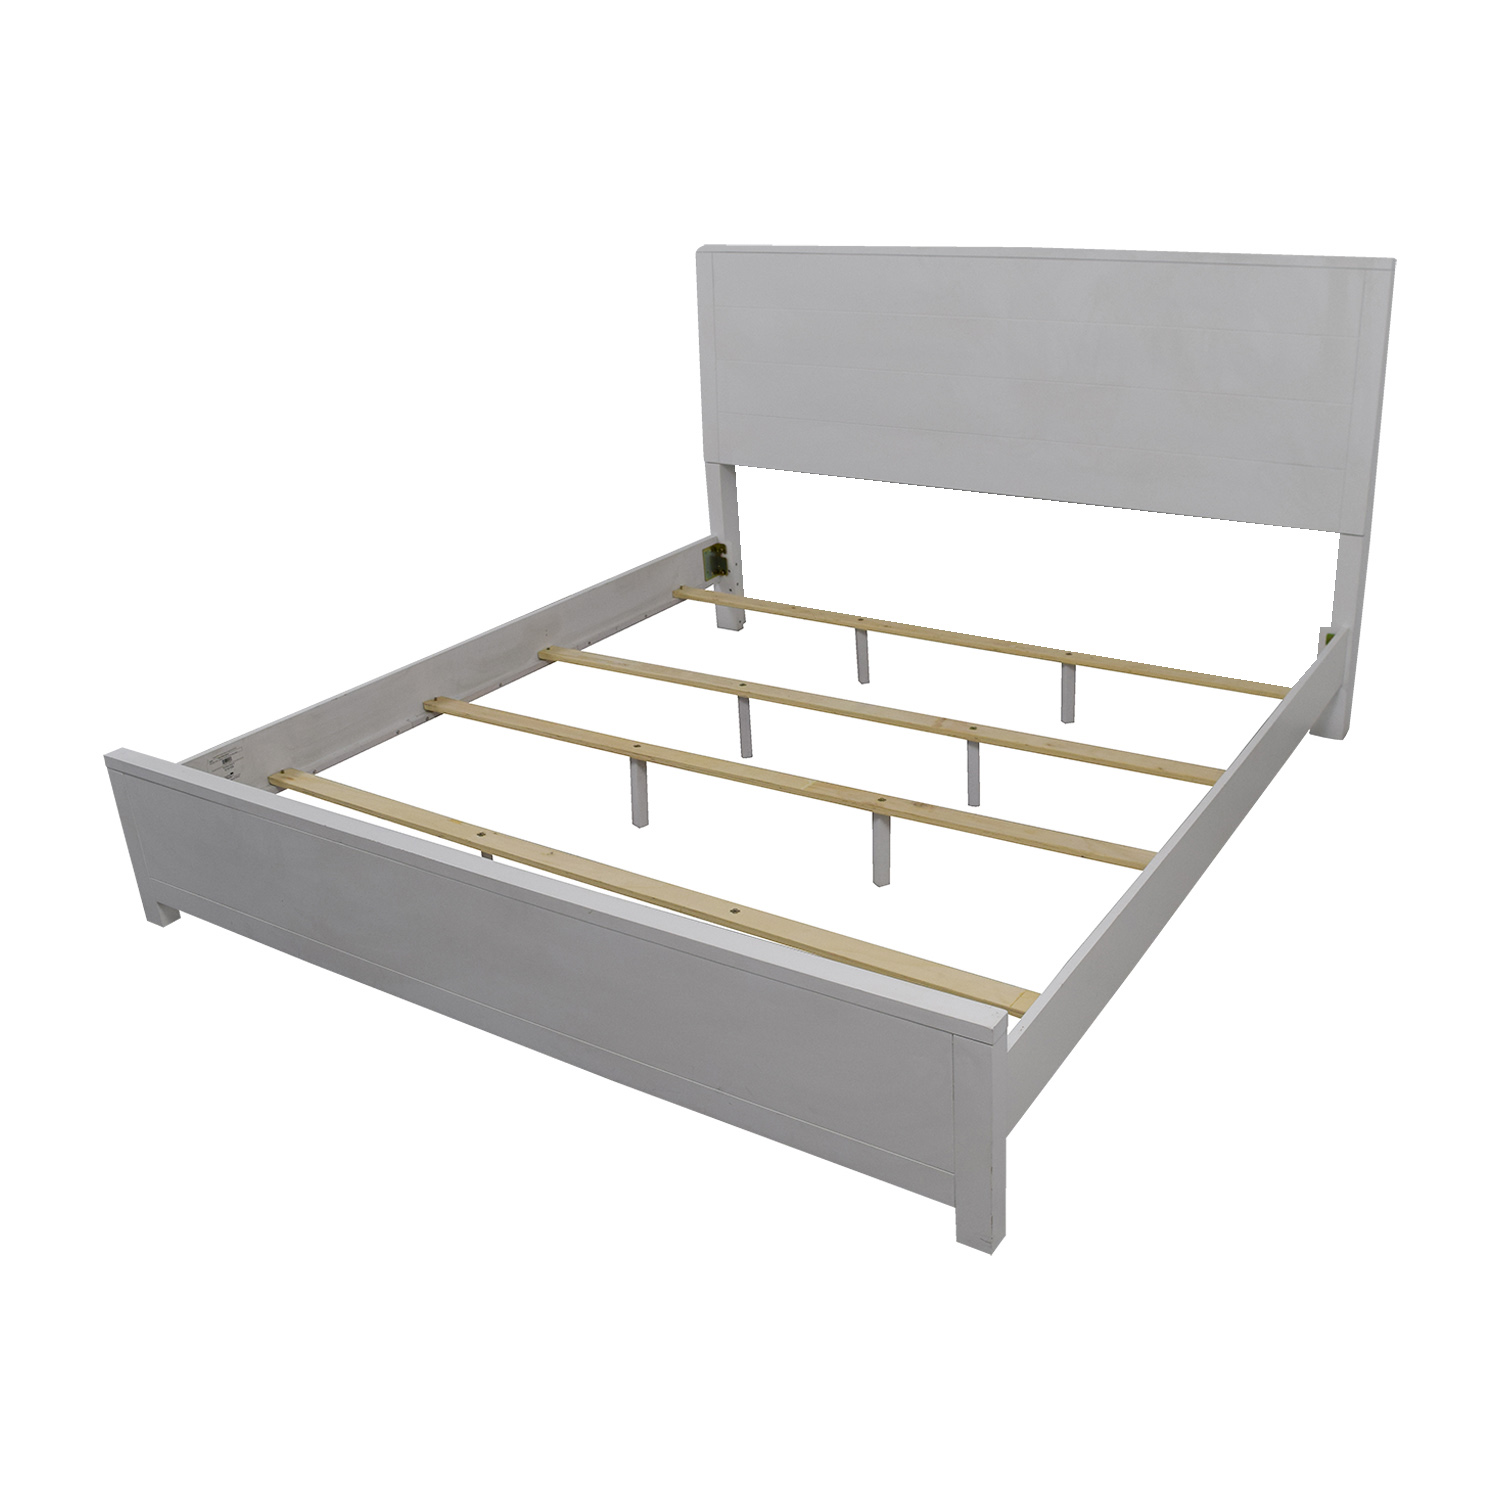 90 off macy s macy s white king bedframe beds 10236 | buy macys white king bedframe